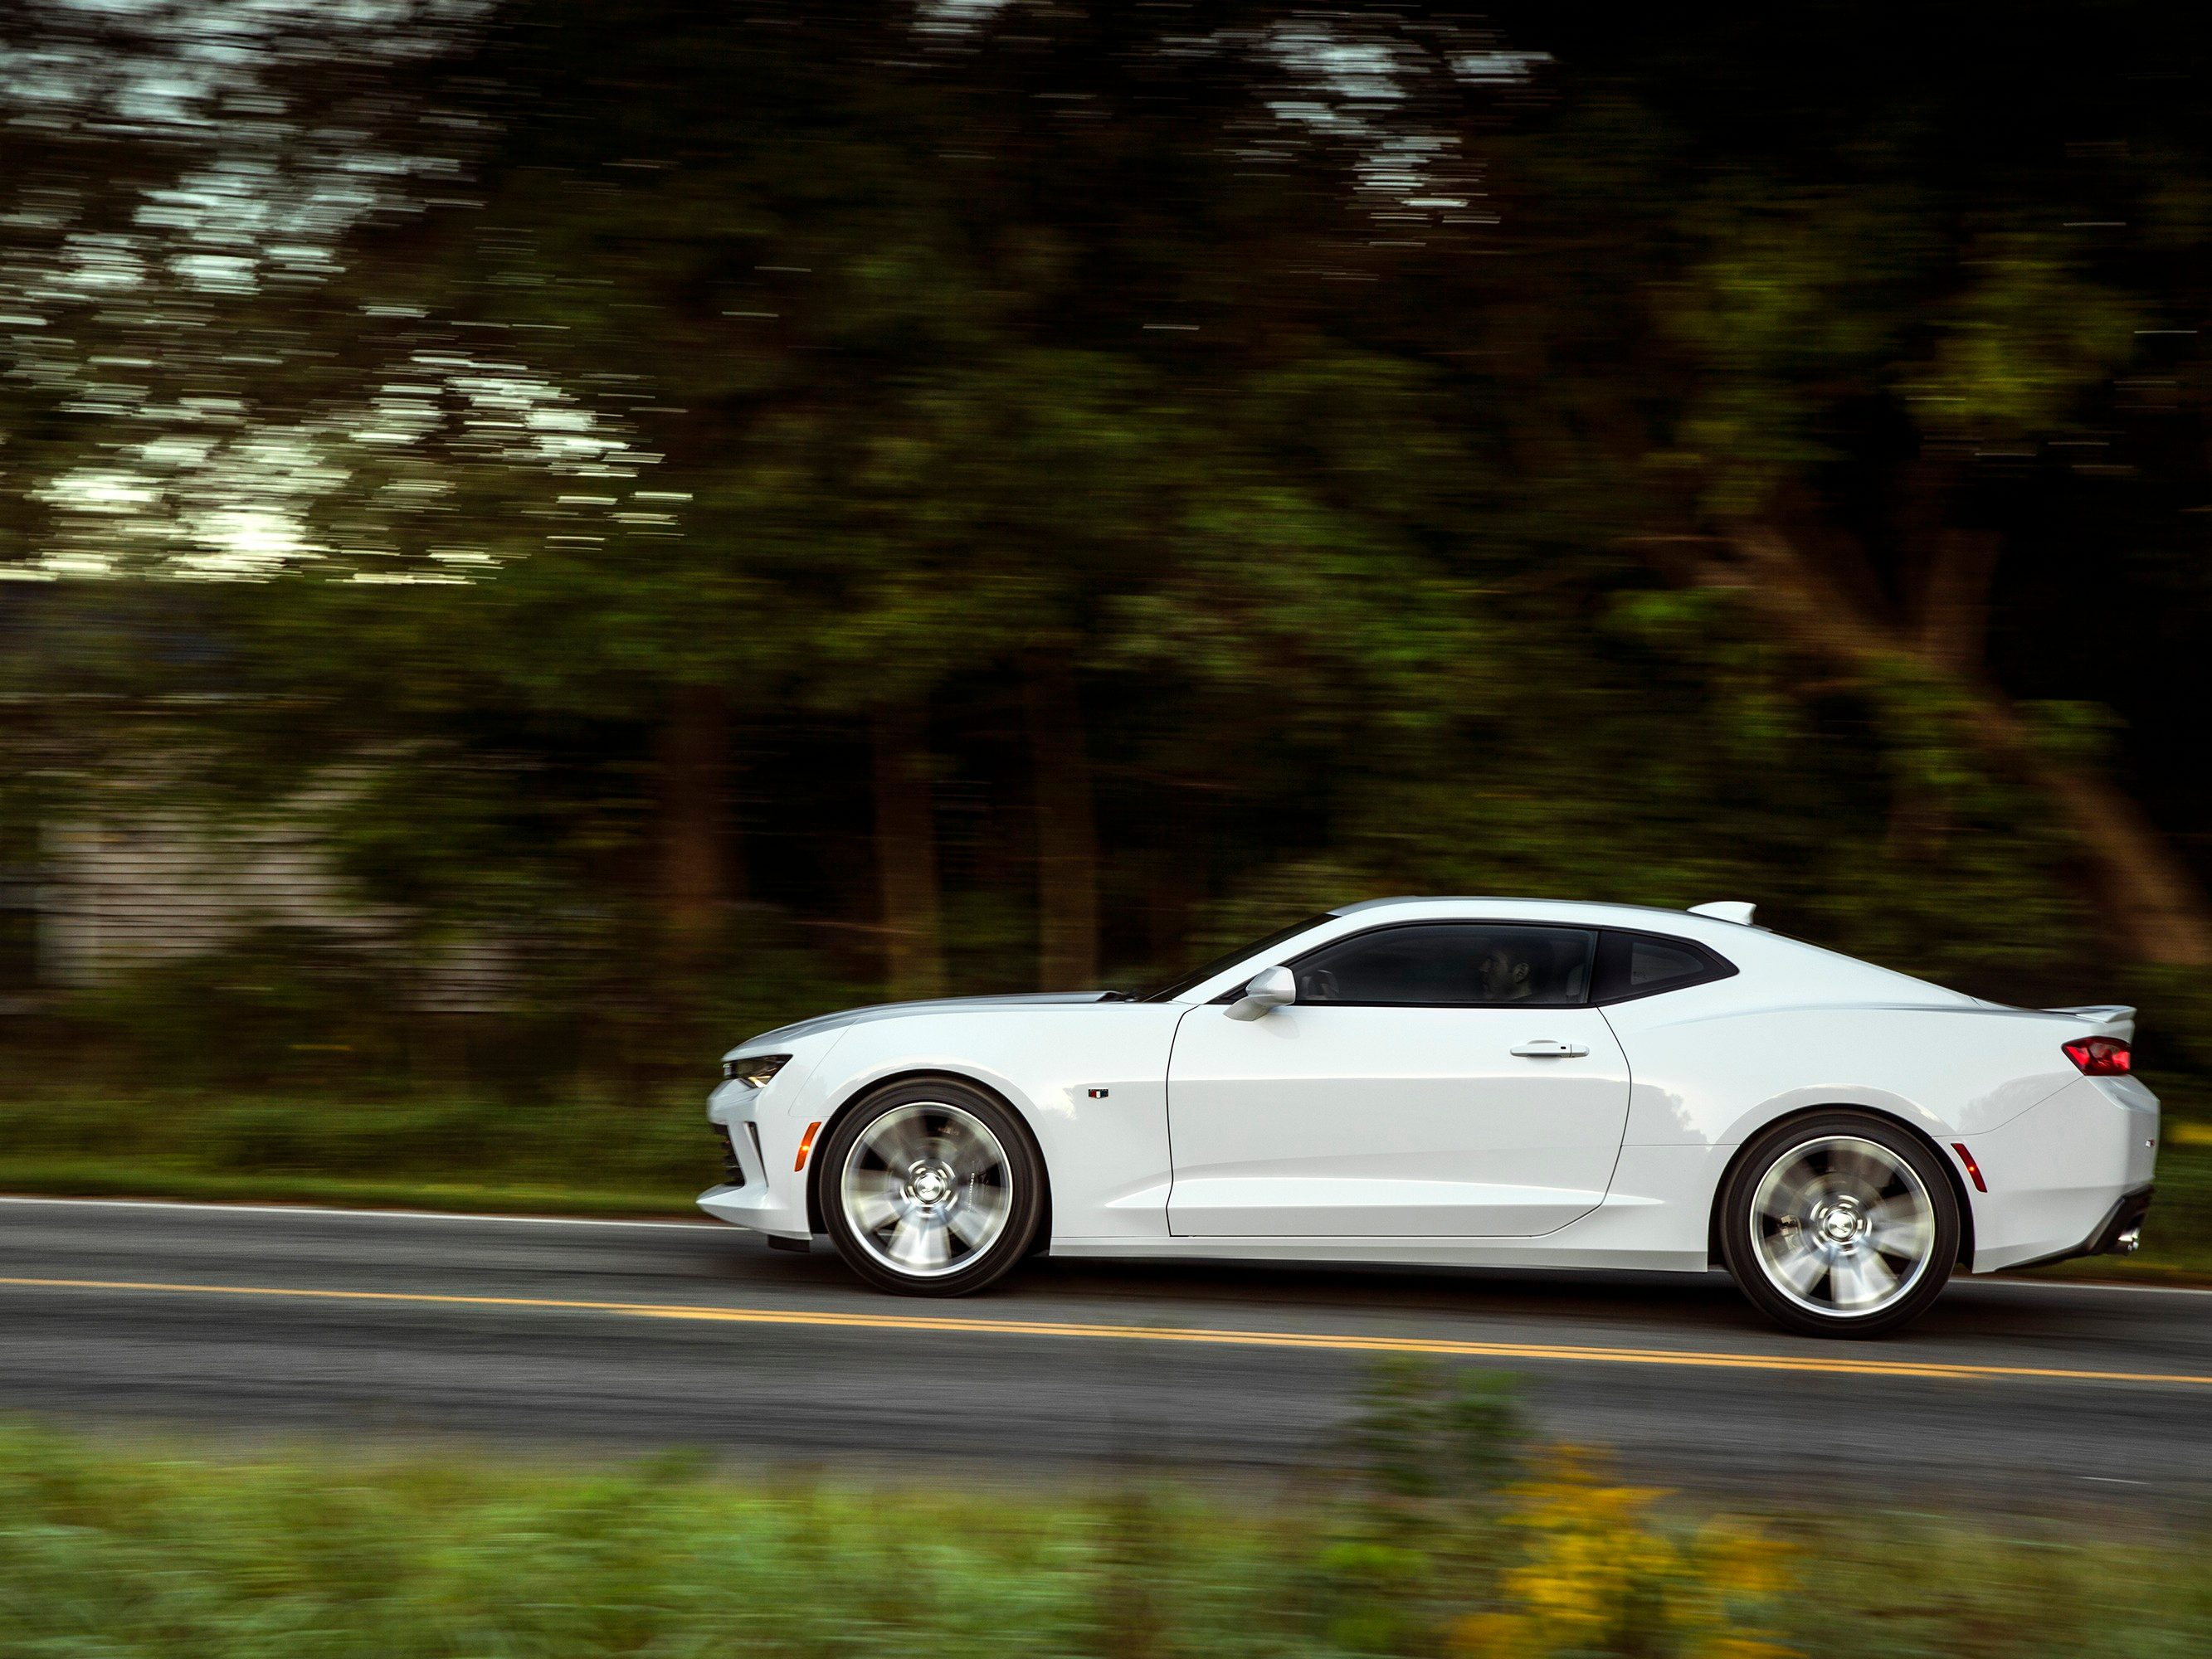 4. The 2016 Chevy Camaro is more efficient.